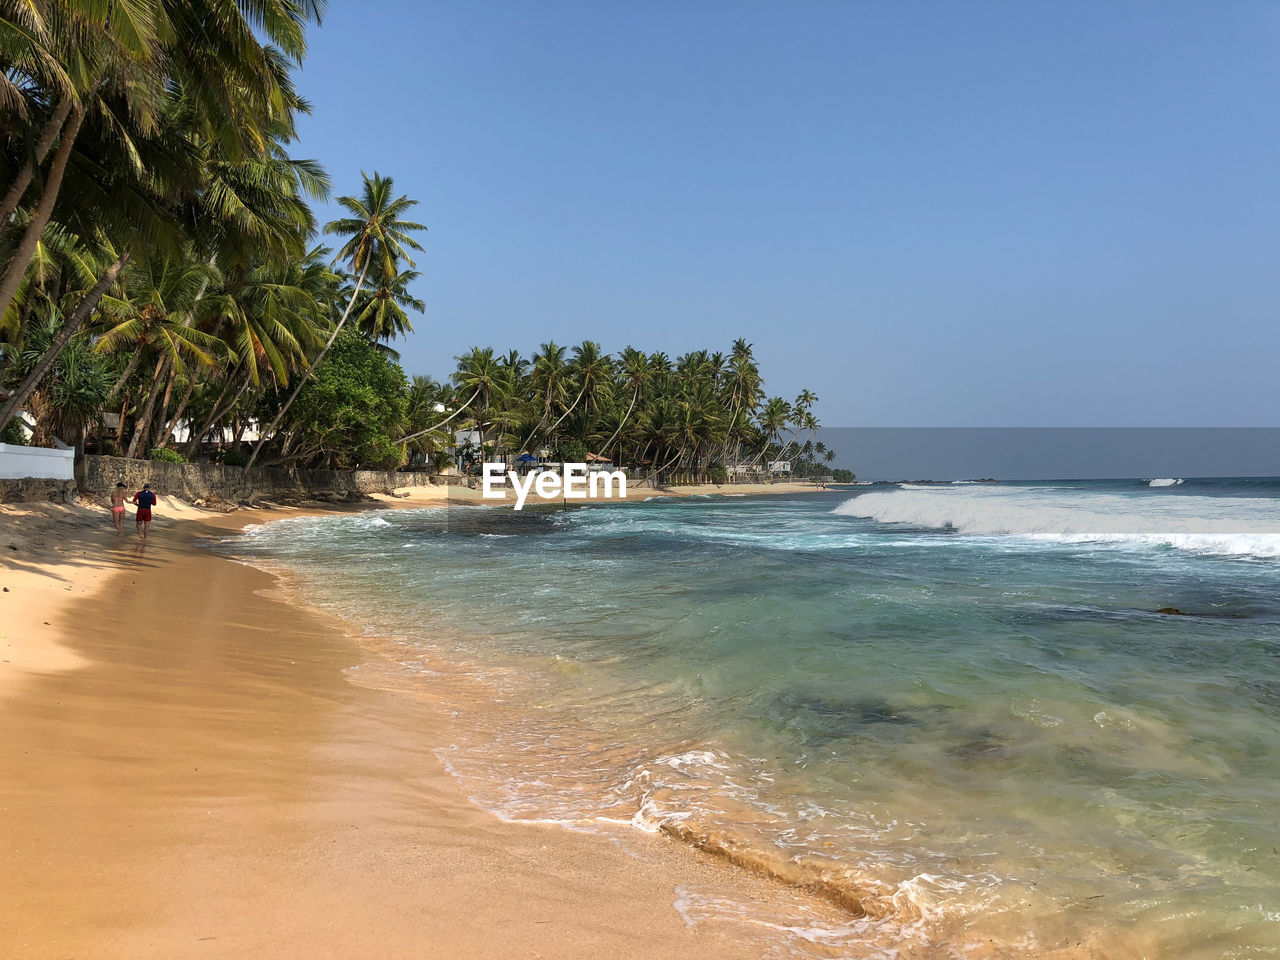 water, sea, sky, beach, land, tree, beauty in nature, palm tree, plant, scenics - nature, tropical climate, nature, day, clear sky, horizon, horizon over water, wave, tranquil scene, tranquility, outdoors